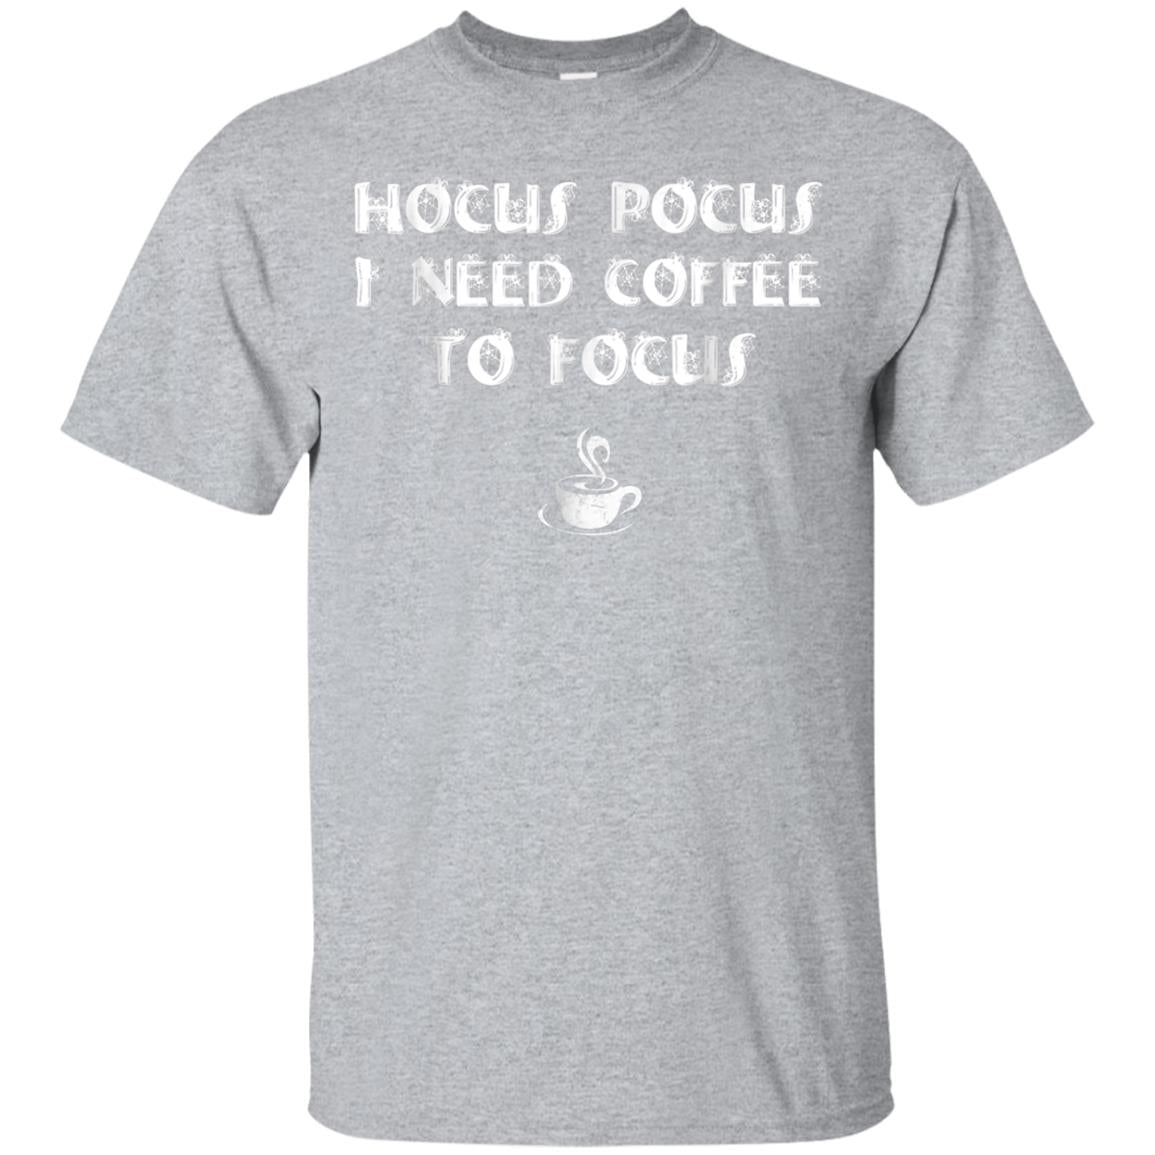 Hocus Pocus I Need Coffee To Focus Shirt Halloween Teacher 99promocode